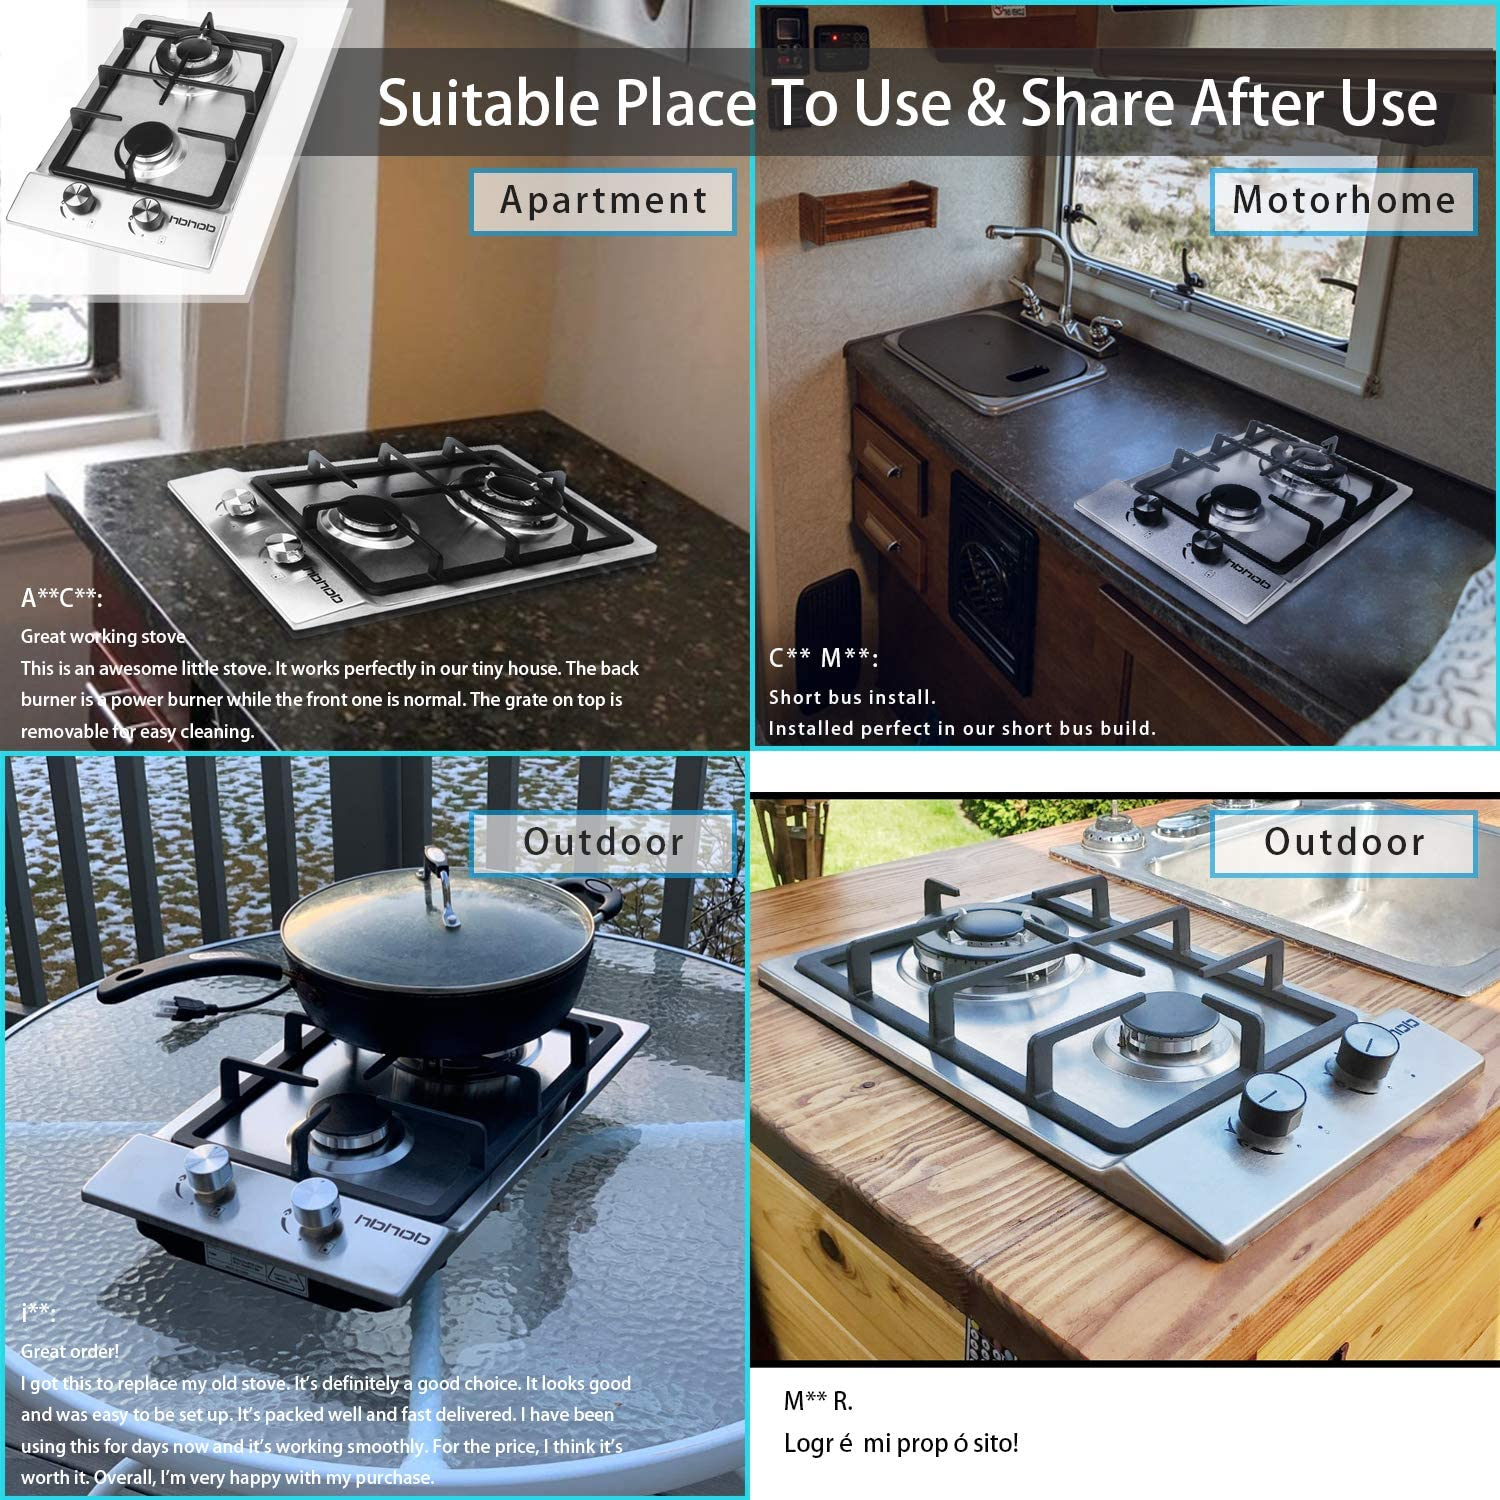 Amazon Com 12 Inches Gas Cooktophigh Gas Stovegashob Stove Toprvstove2 Burnersgasrange Double Burner Gas Stoves Kitchen High Gas Stovestainless Steel Built In Gas Hoblpg Ng Dual Fuel Easy To Clean Appliances